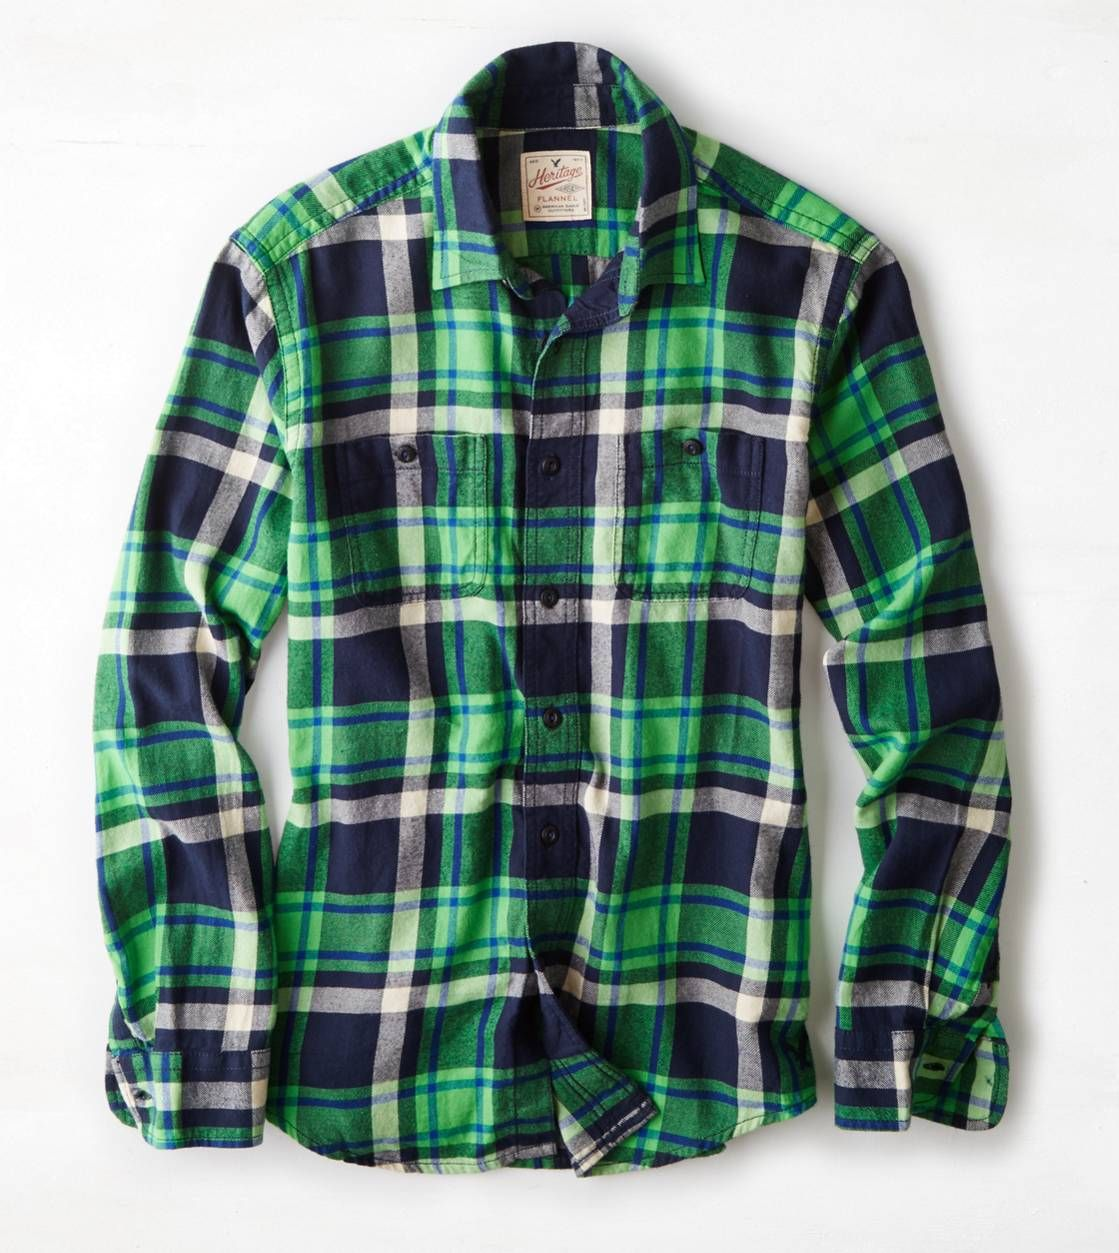 Flannel shirts at kohl's  AEO Heritage Flannel Shirt  Christmas   Pinterest  Aeo